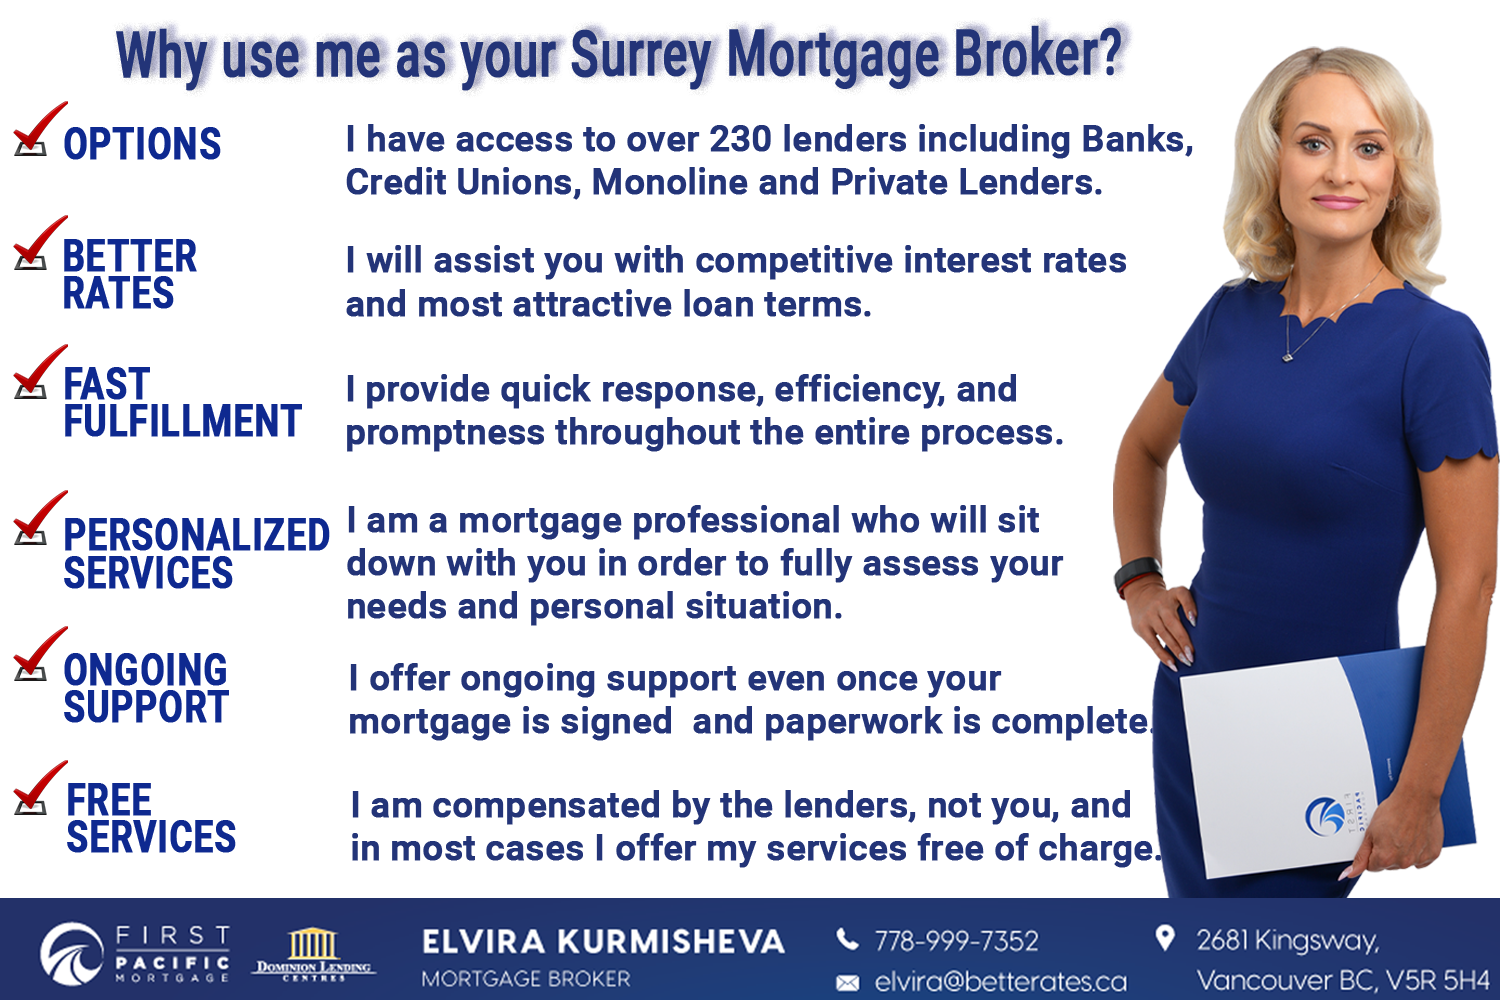 Picture of Surrey mortgage broker